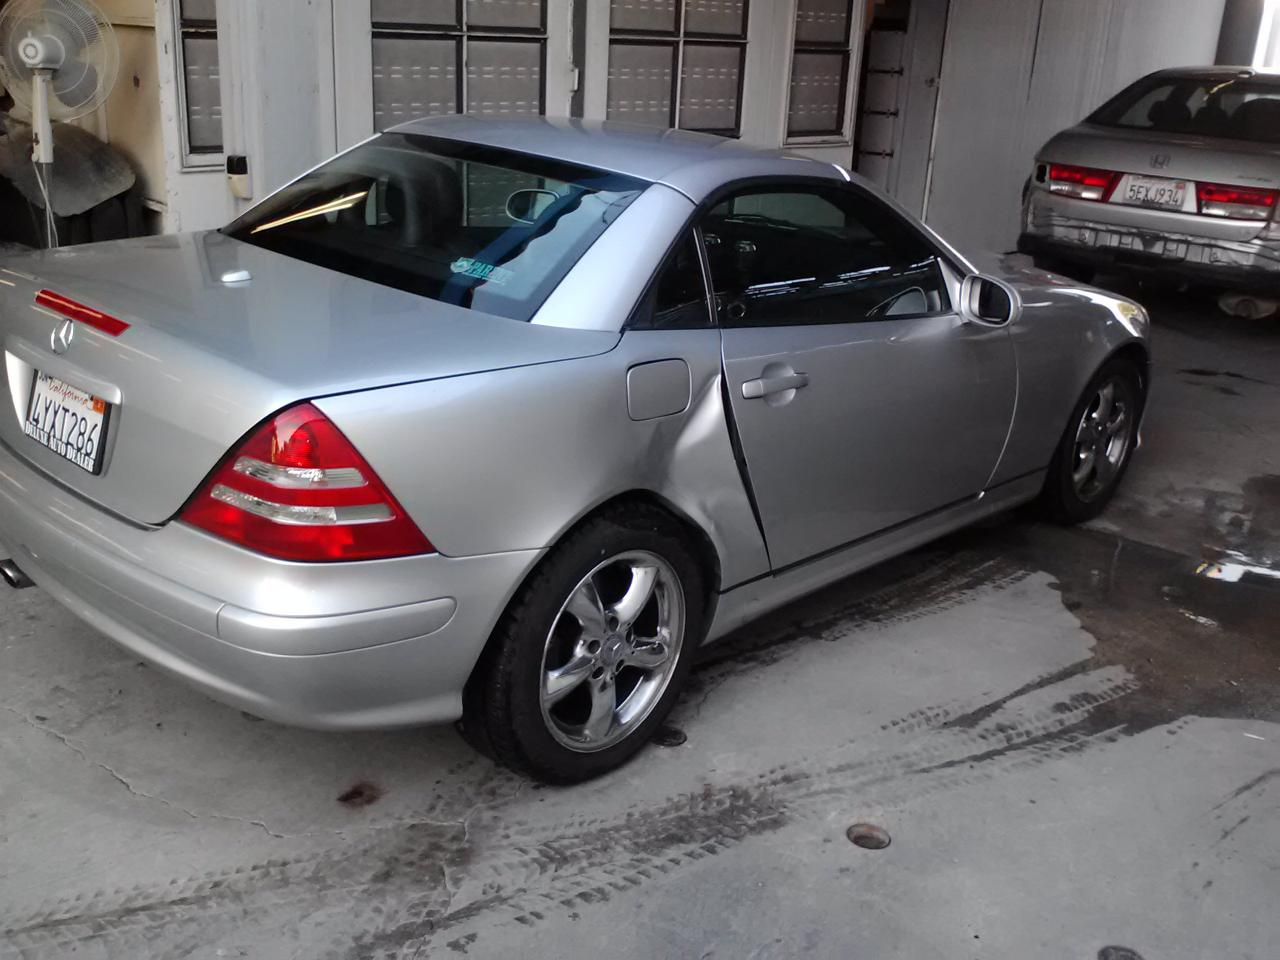 Mercedes benz with right side damage fields auto body shop for Mercedes benz auto body shop